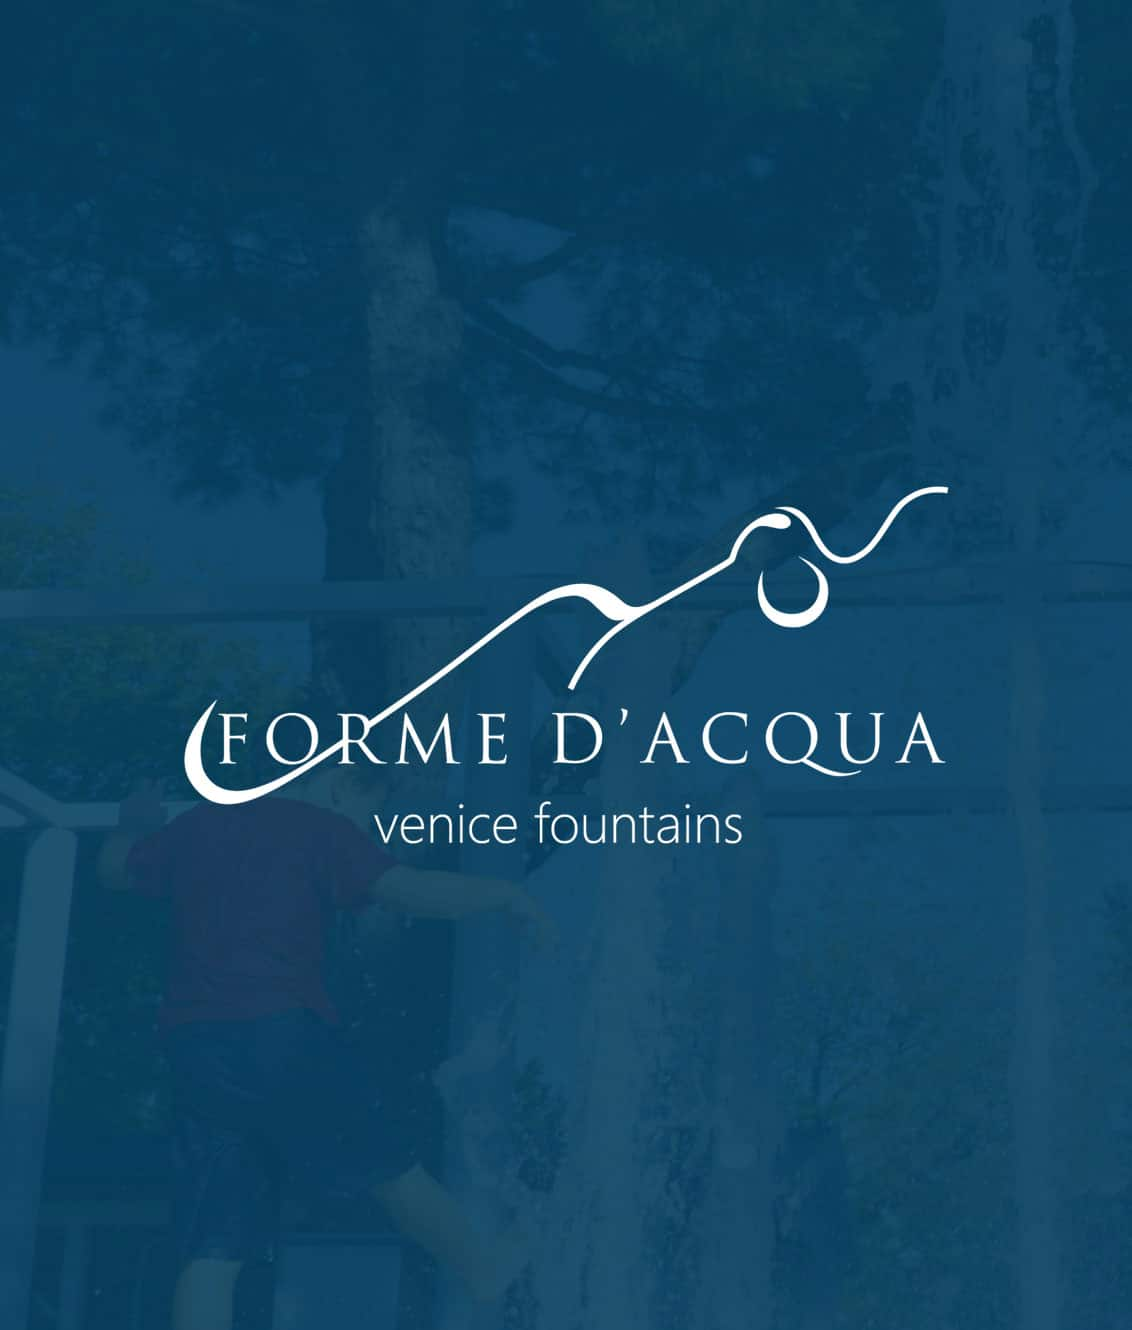 forme dacqua wide tall teroro agency - Forme D'Acqua